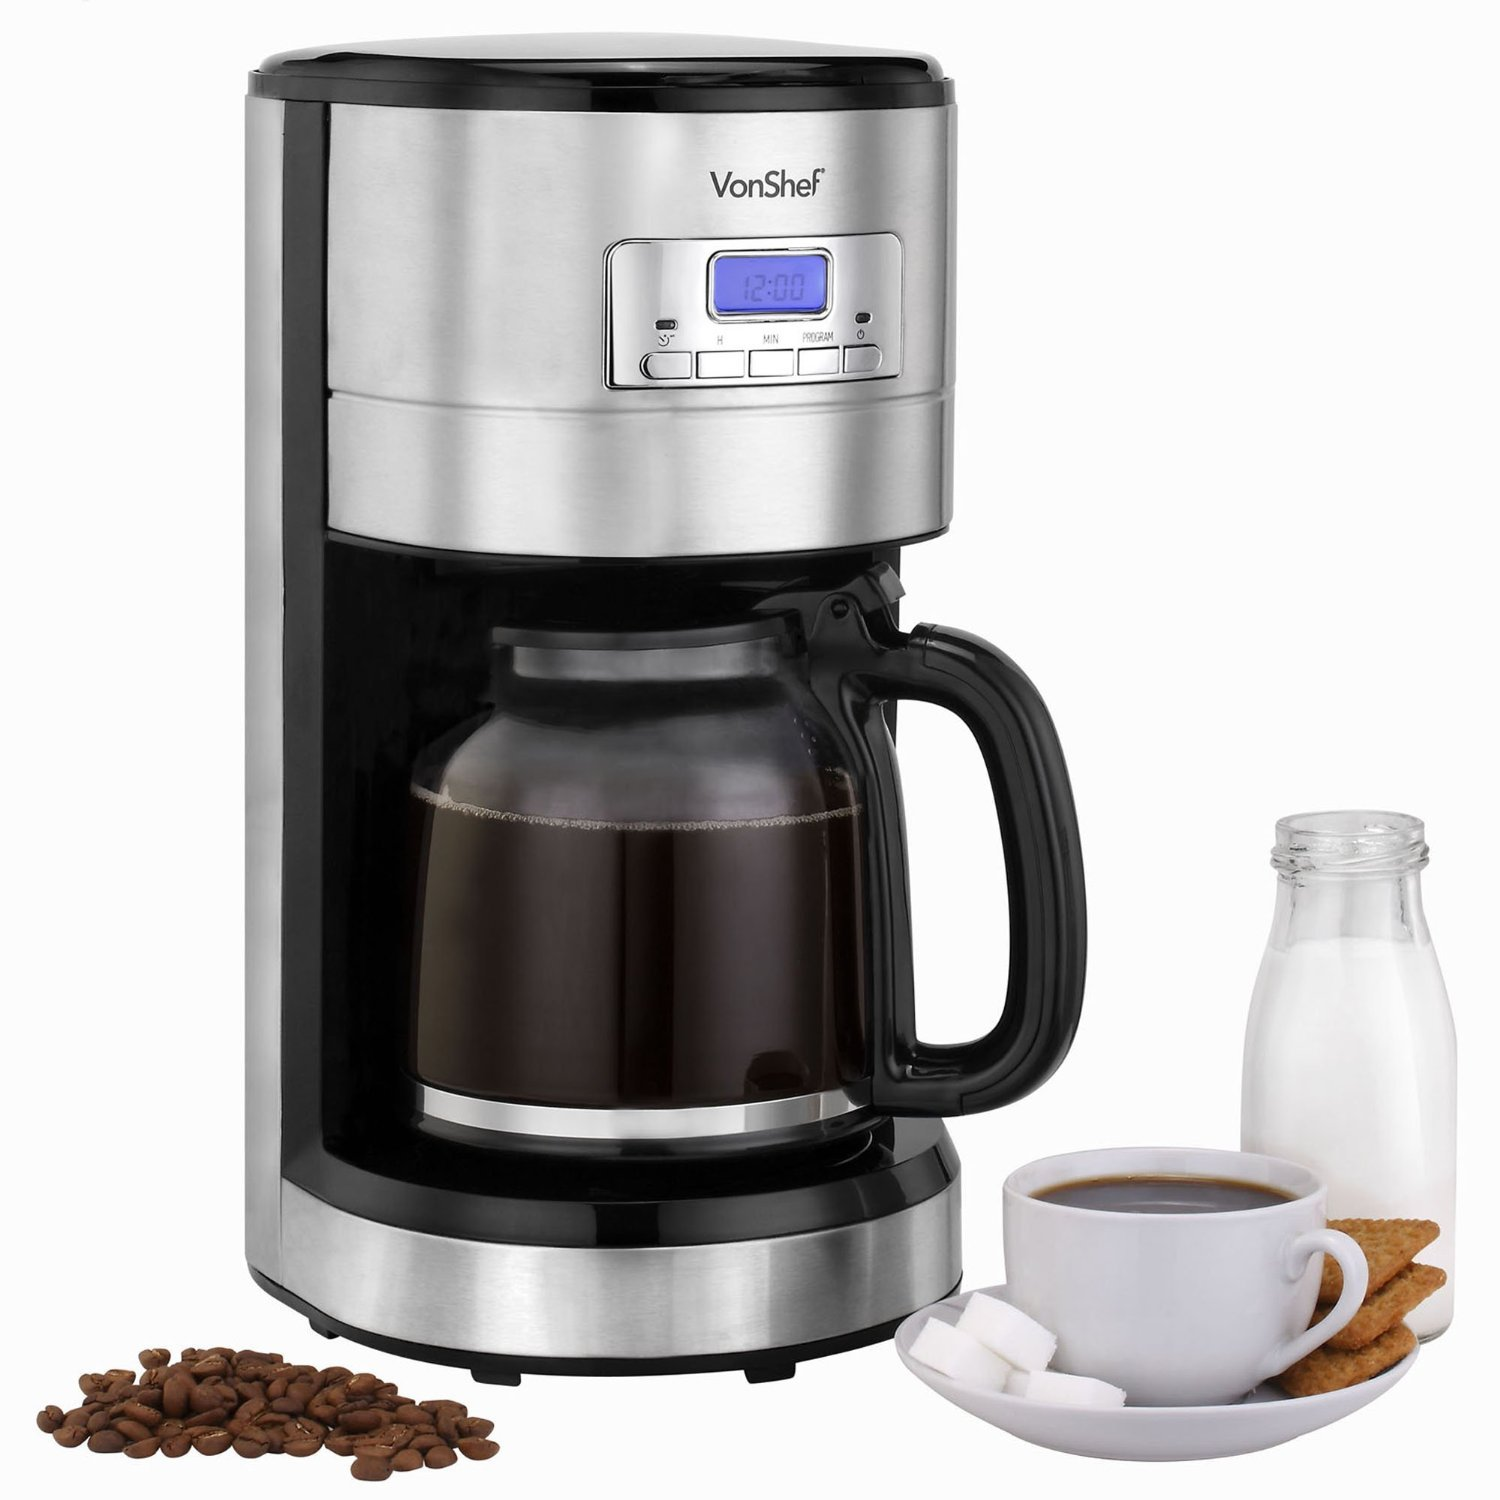 Amazon.com: VonShef Programmable Digital Coffee Maker with Measuring Spoon-  12 Cup Capacity : Kitchen & Dining